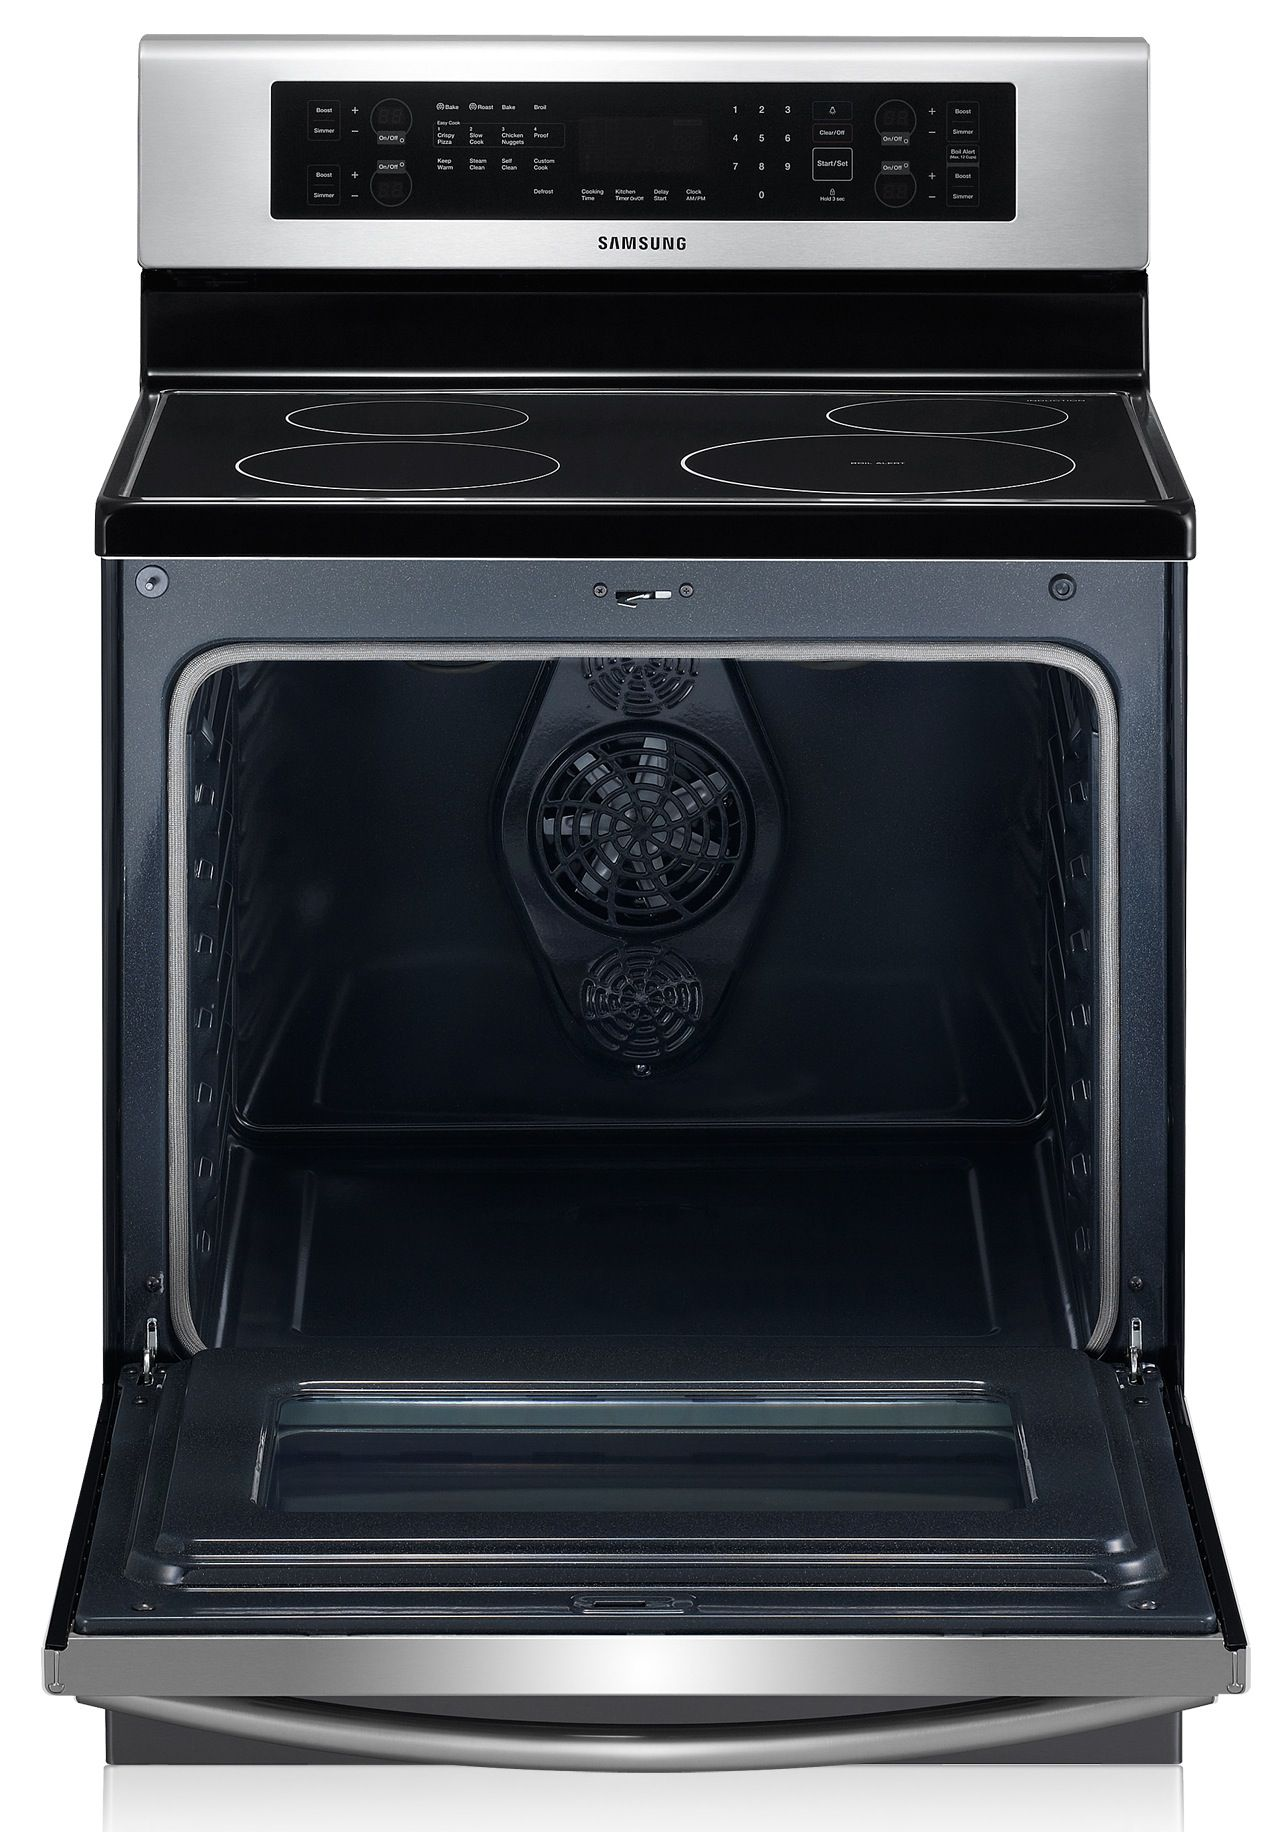 Samsung NE595N0PBSR 5.9 cu. ft. Electric Range - Stainless Steel